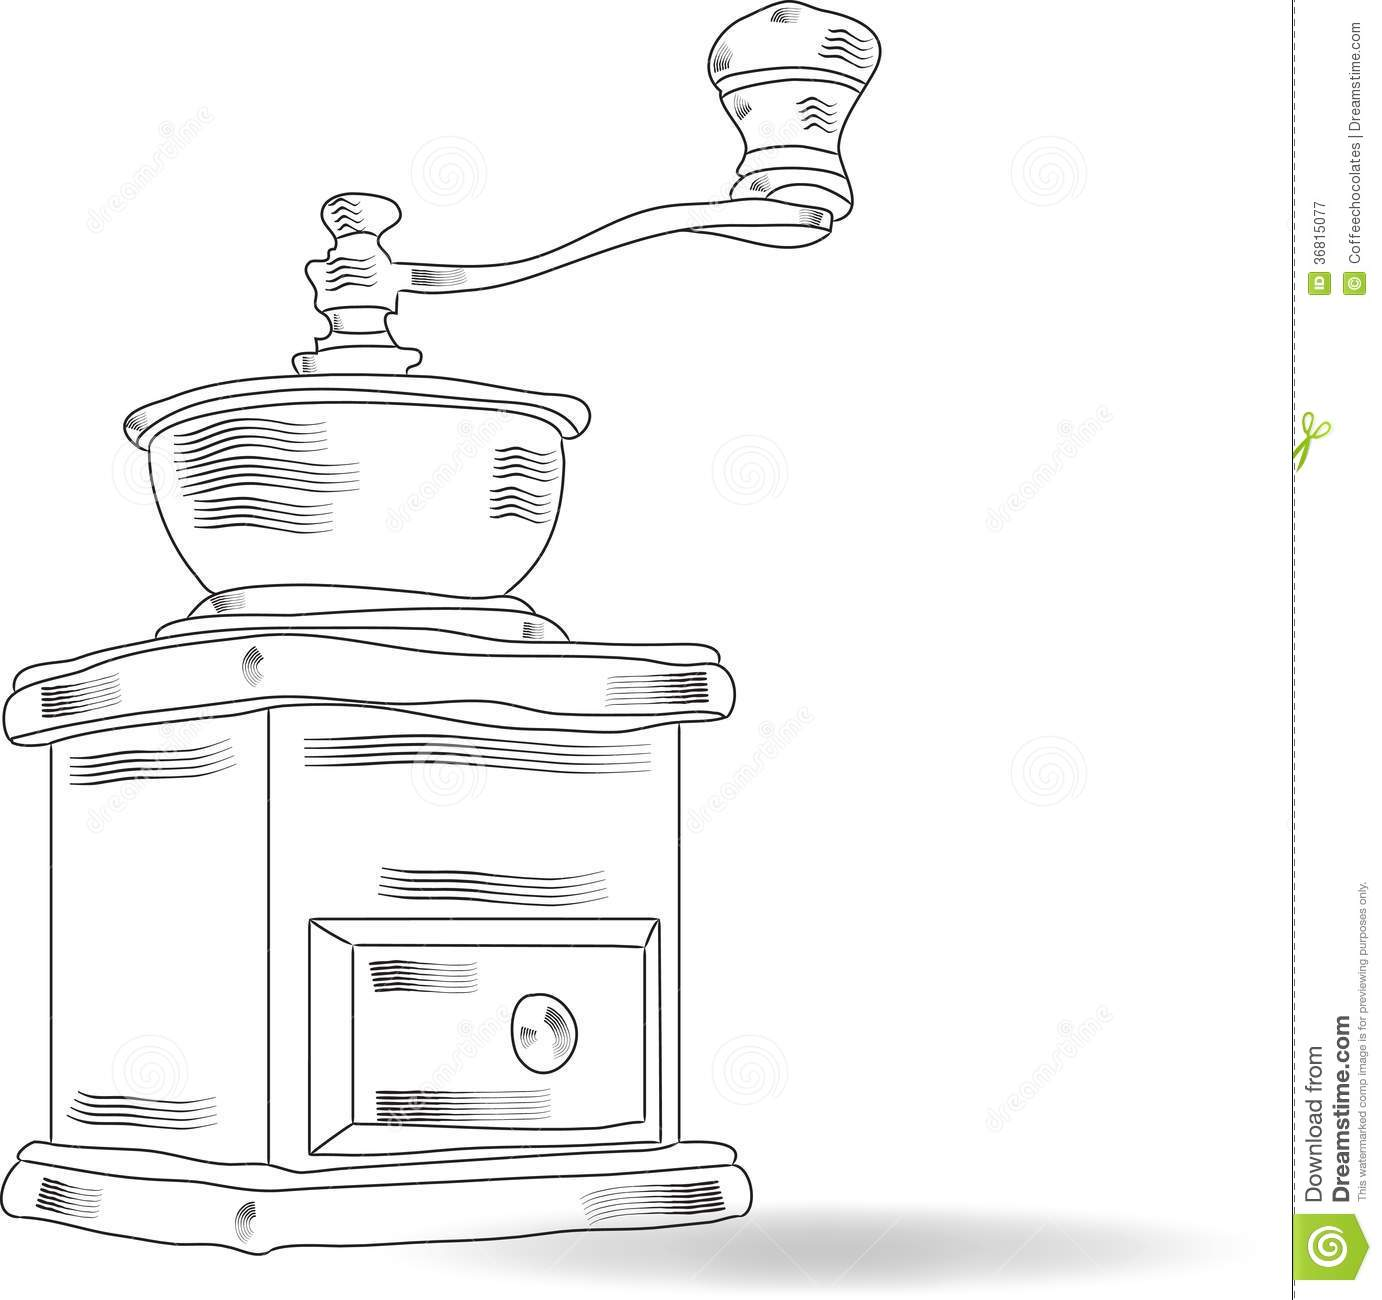 Sketch Coffee Grinder Royalty Free Stock Photography